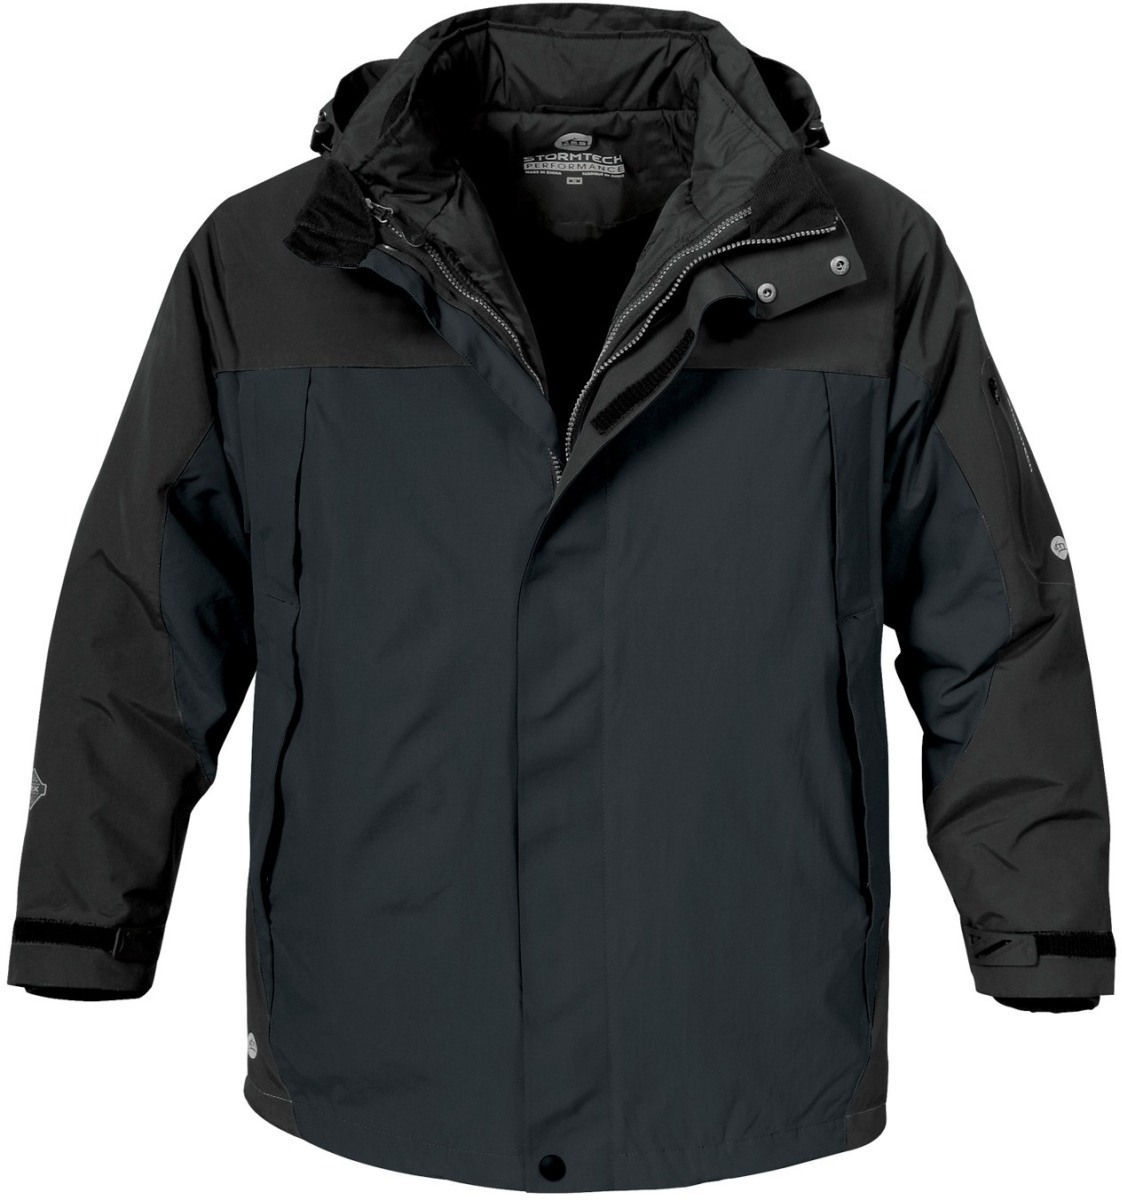 Men's Stormtech Five-in-one Parka